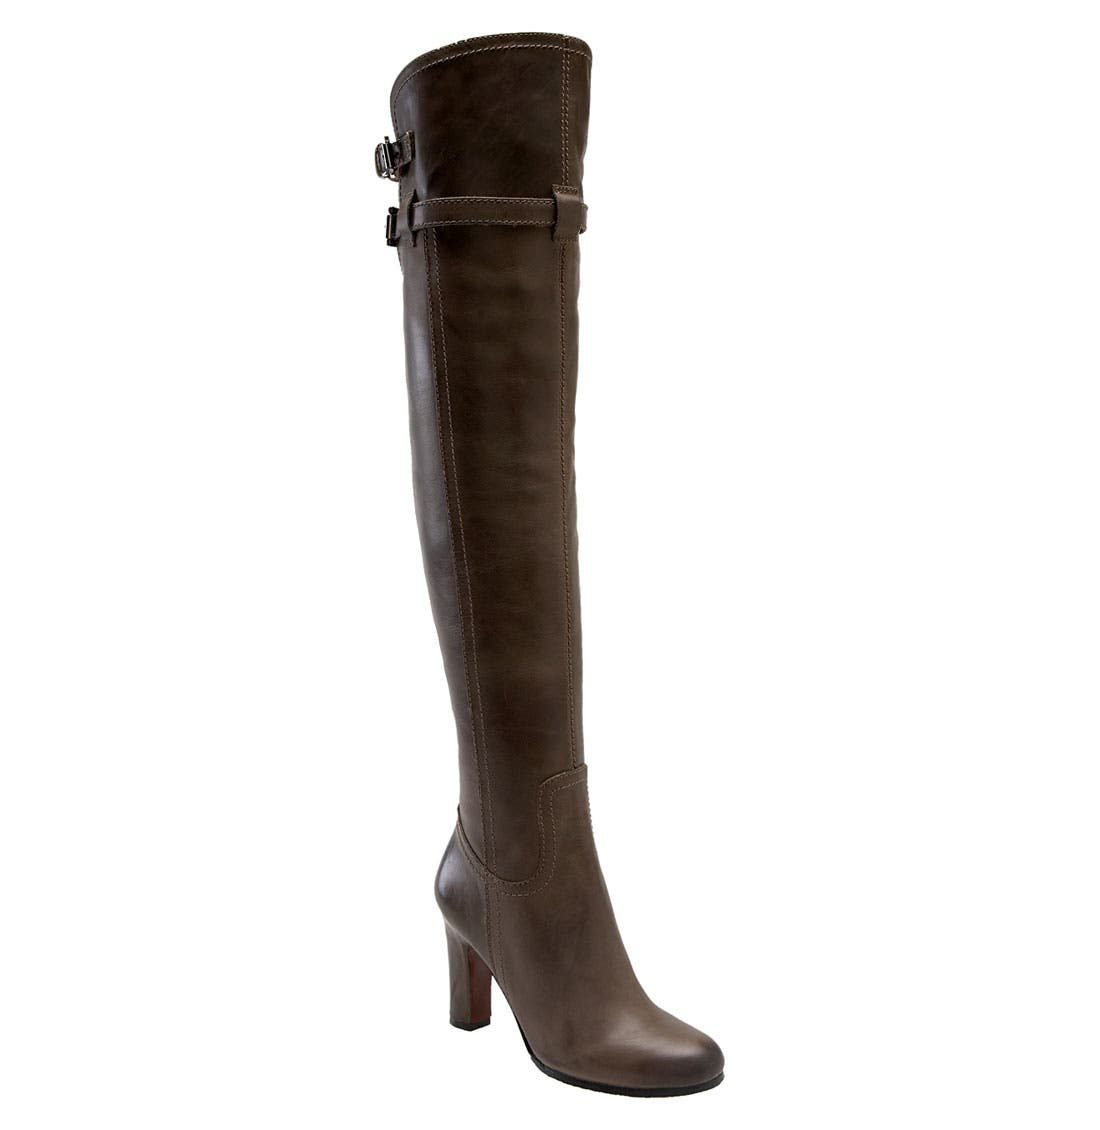 Alternate Image 1 Selected - Sam Edelman 'Sutton' Over the Knee Boot